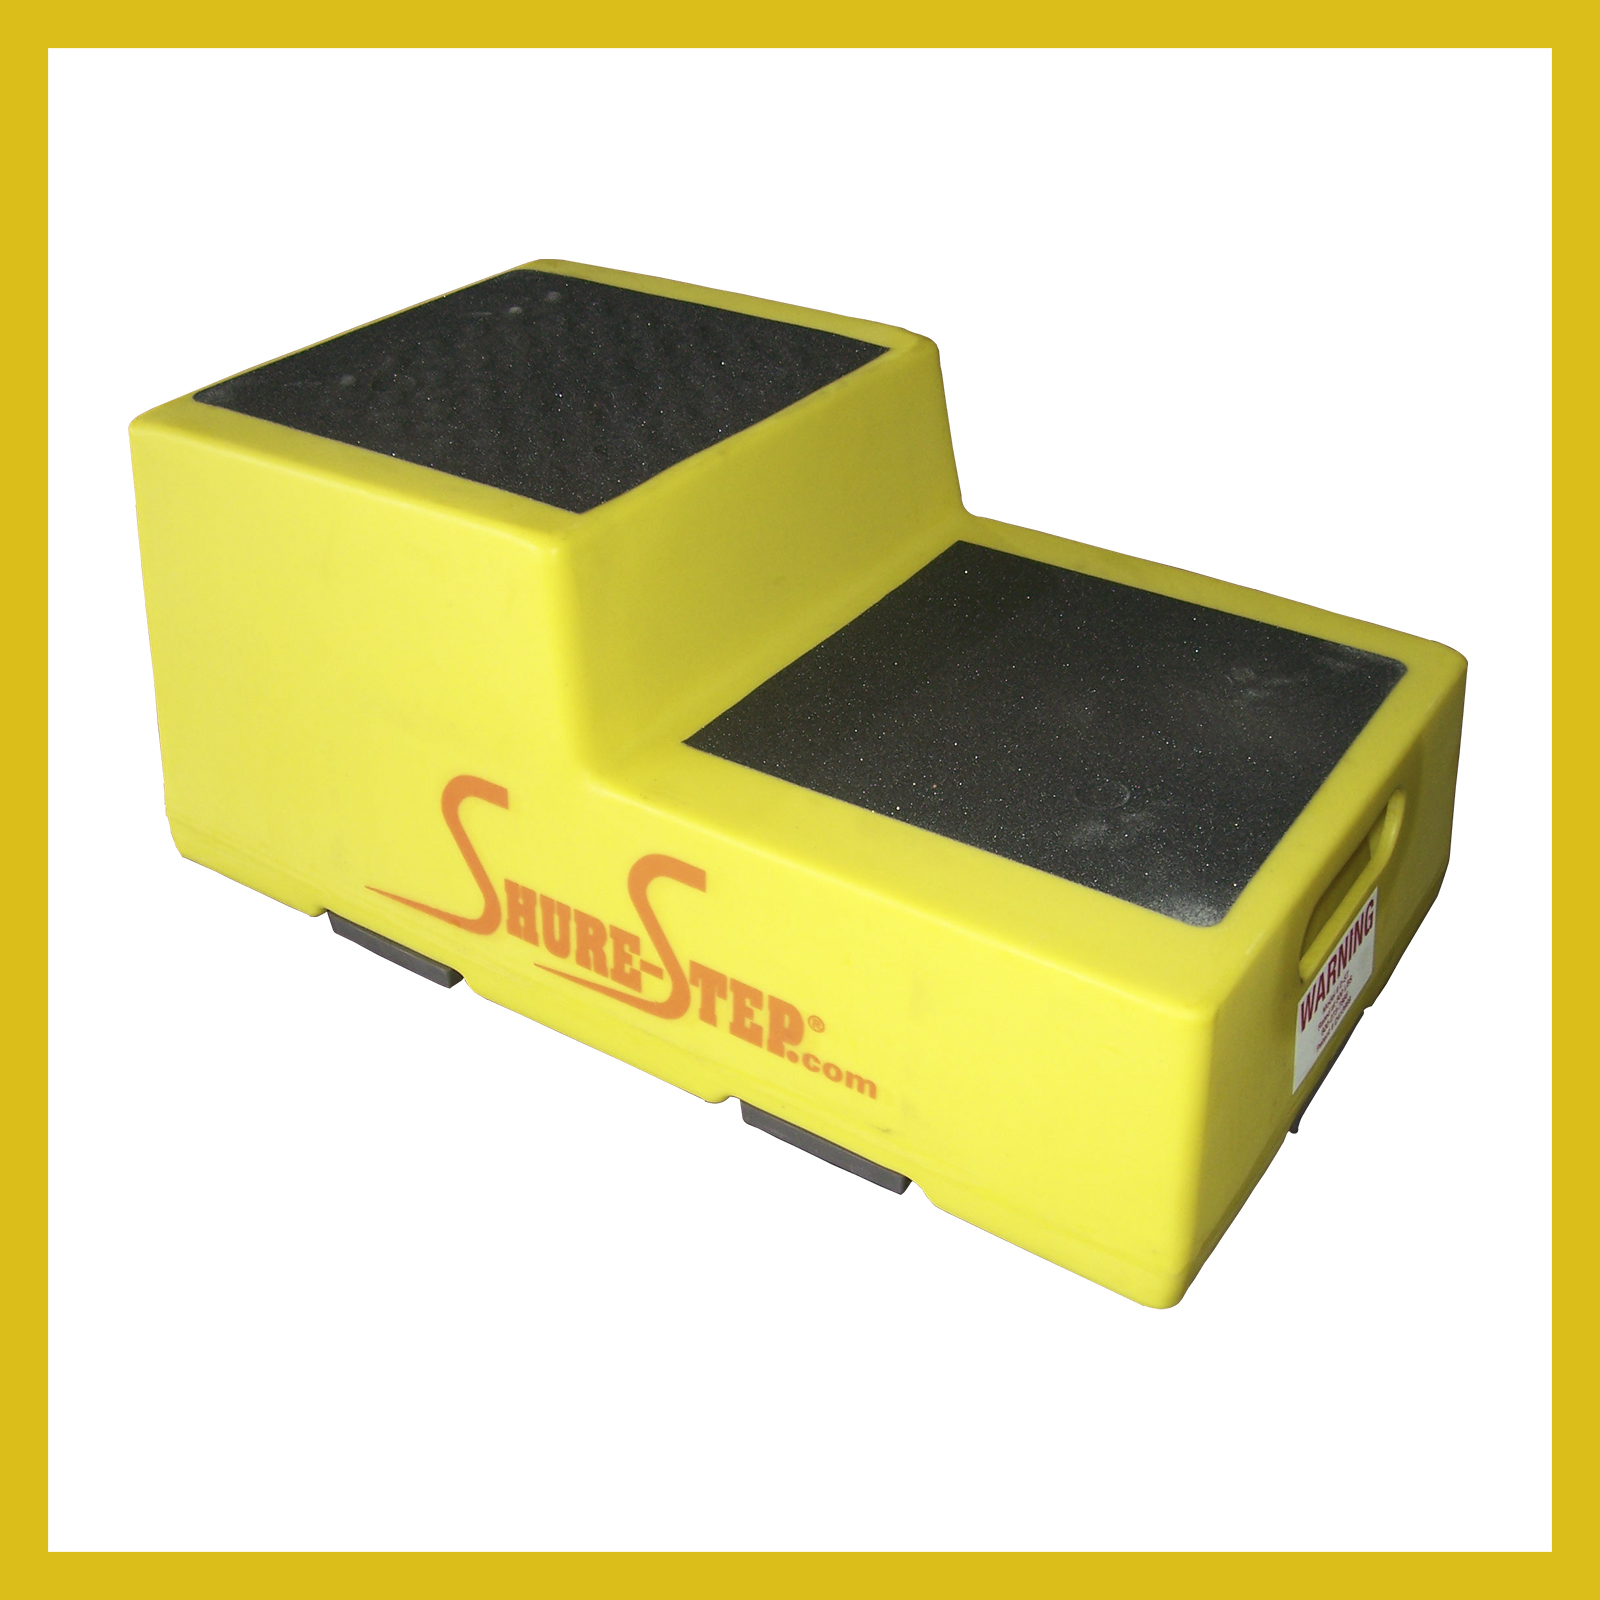 Shure-Step 2 Step Stool : senior step stool - islam-shia.org